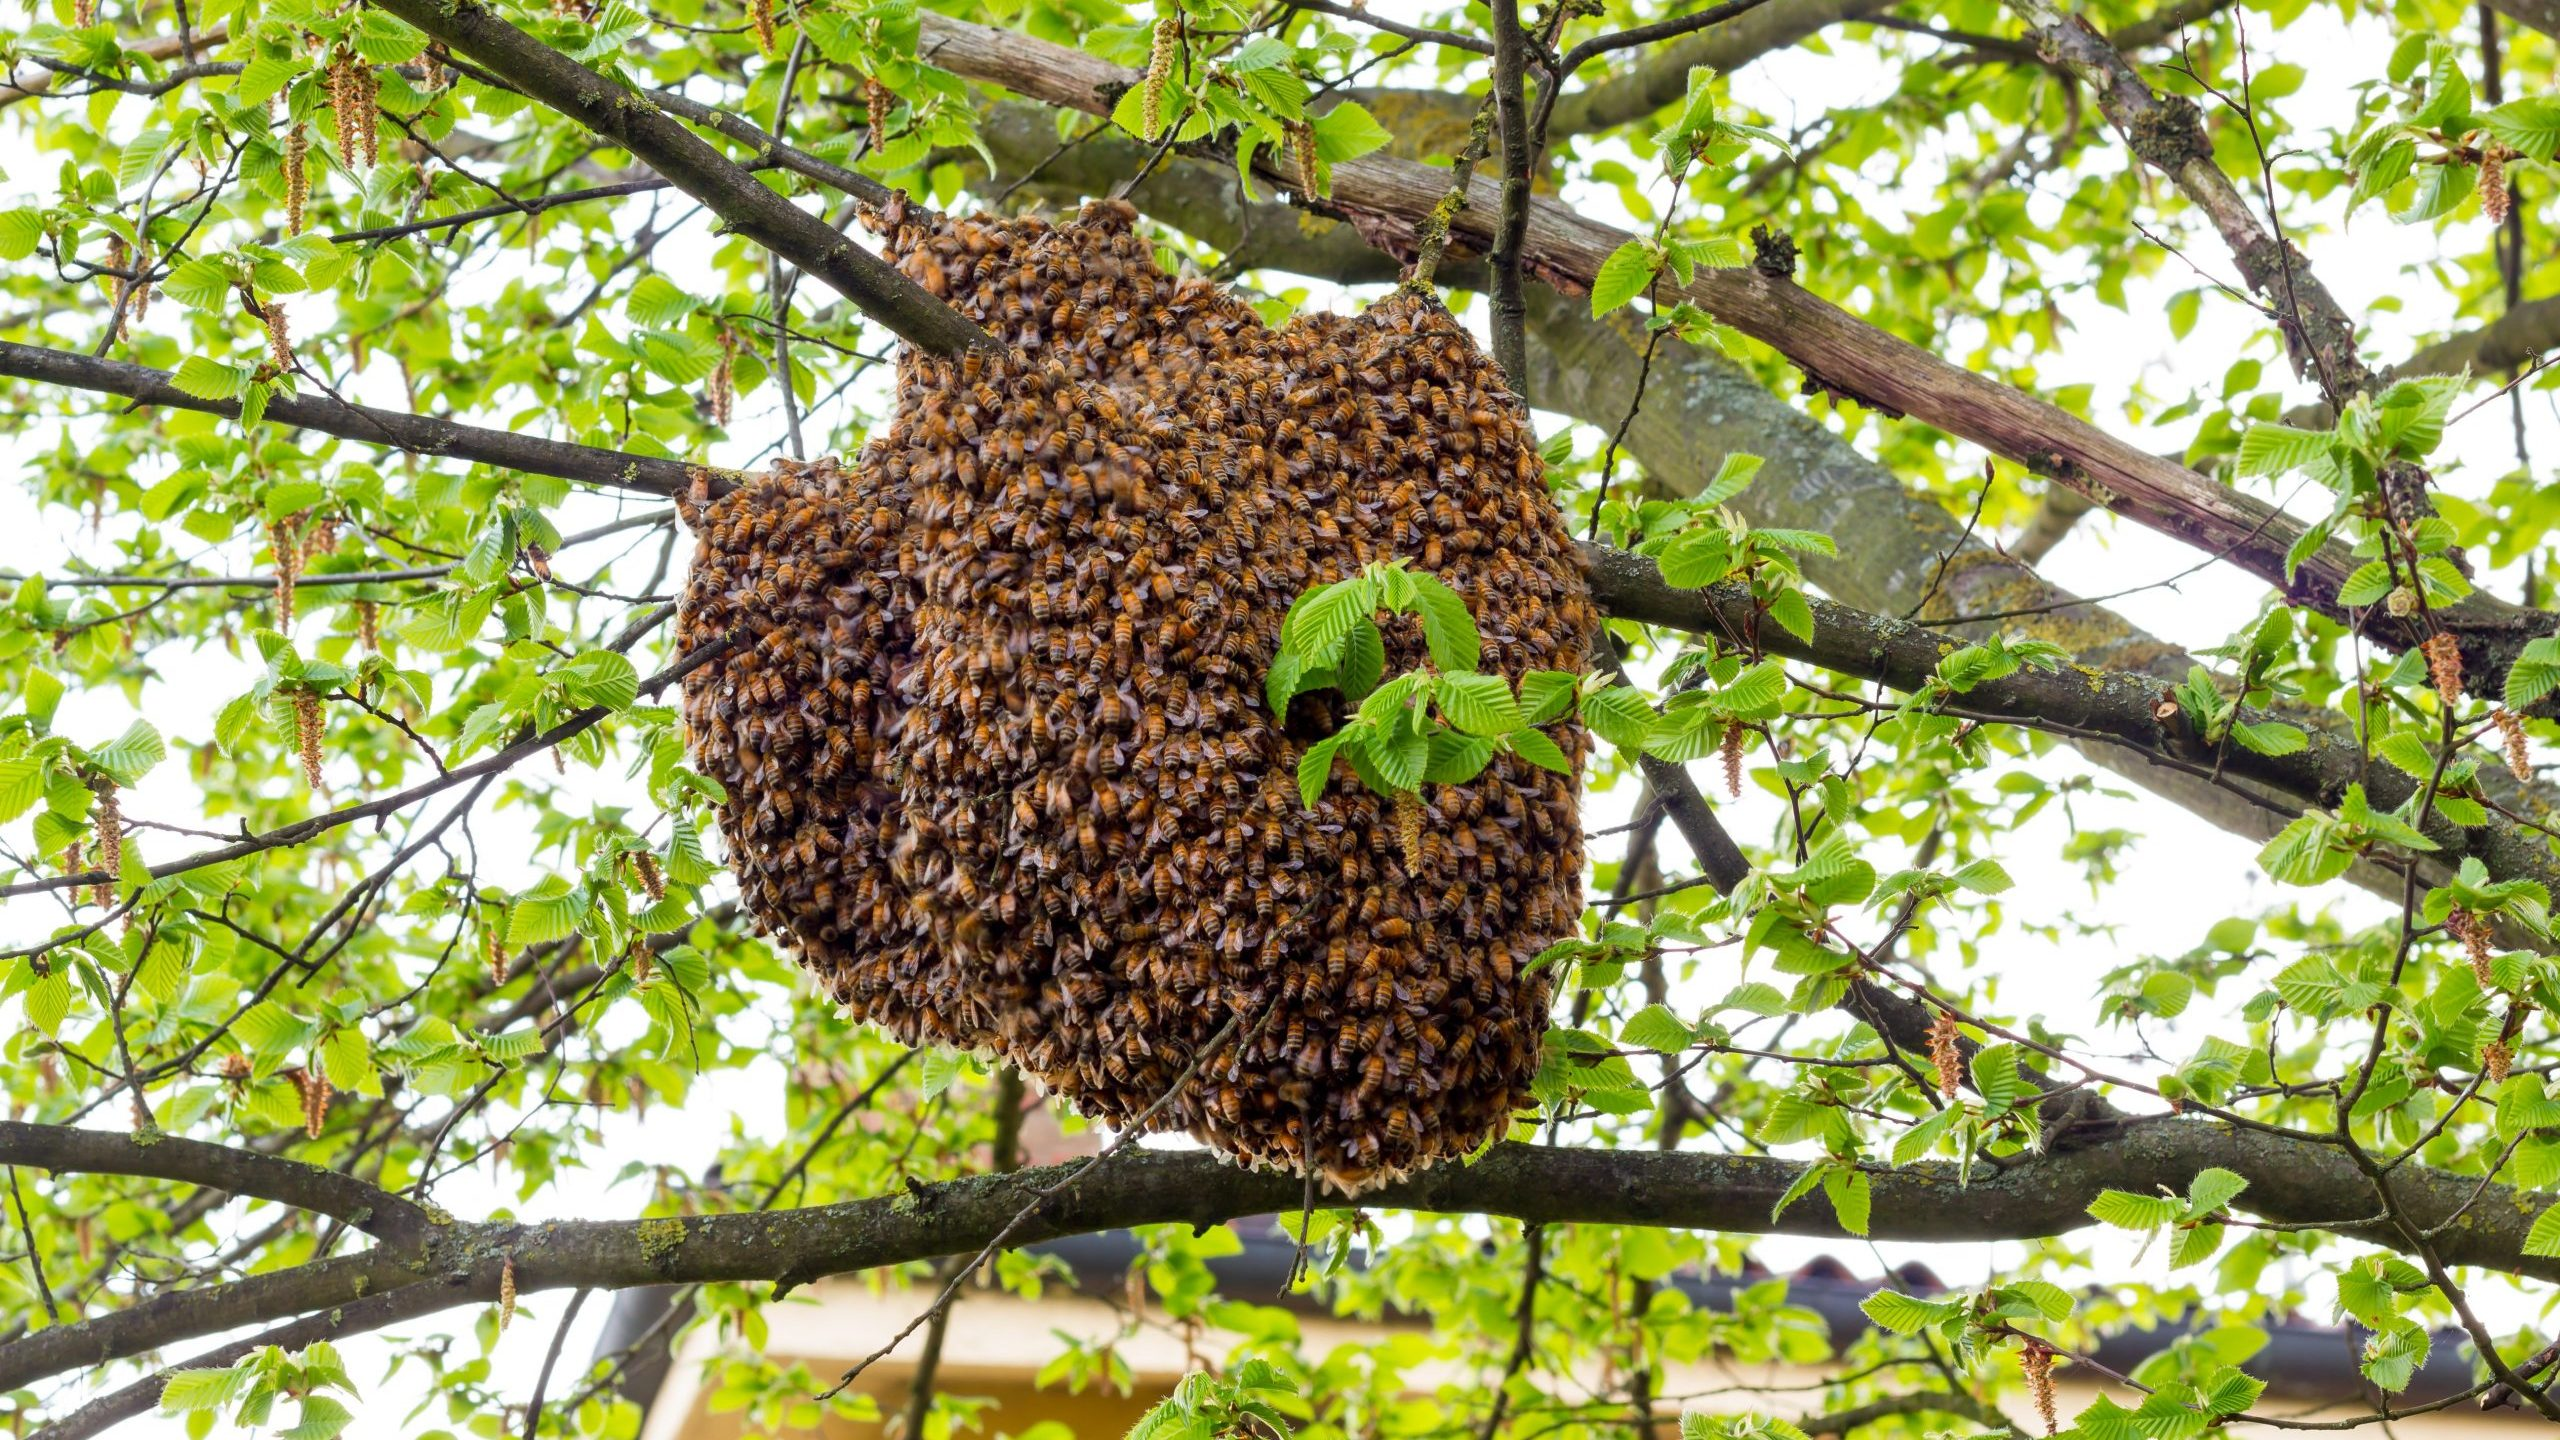 Bees are seen swarming a hive in this file image. (Credit: iStock / Getty Images Plus)